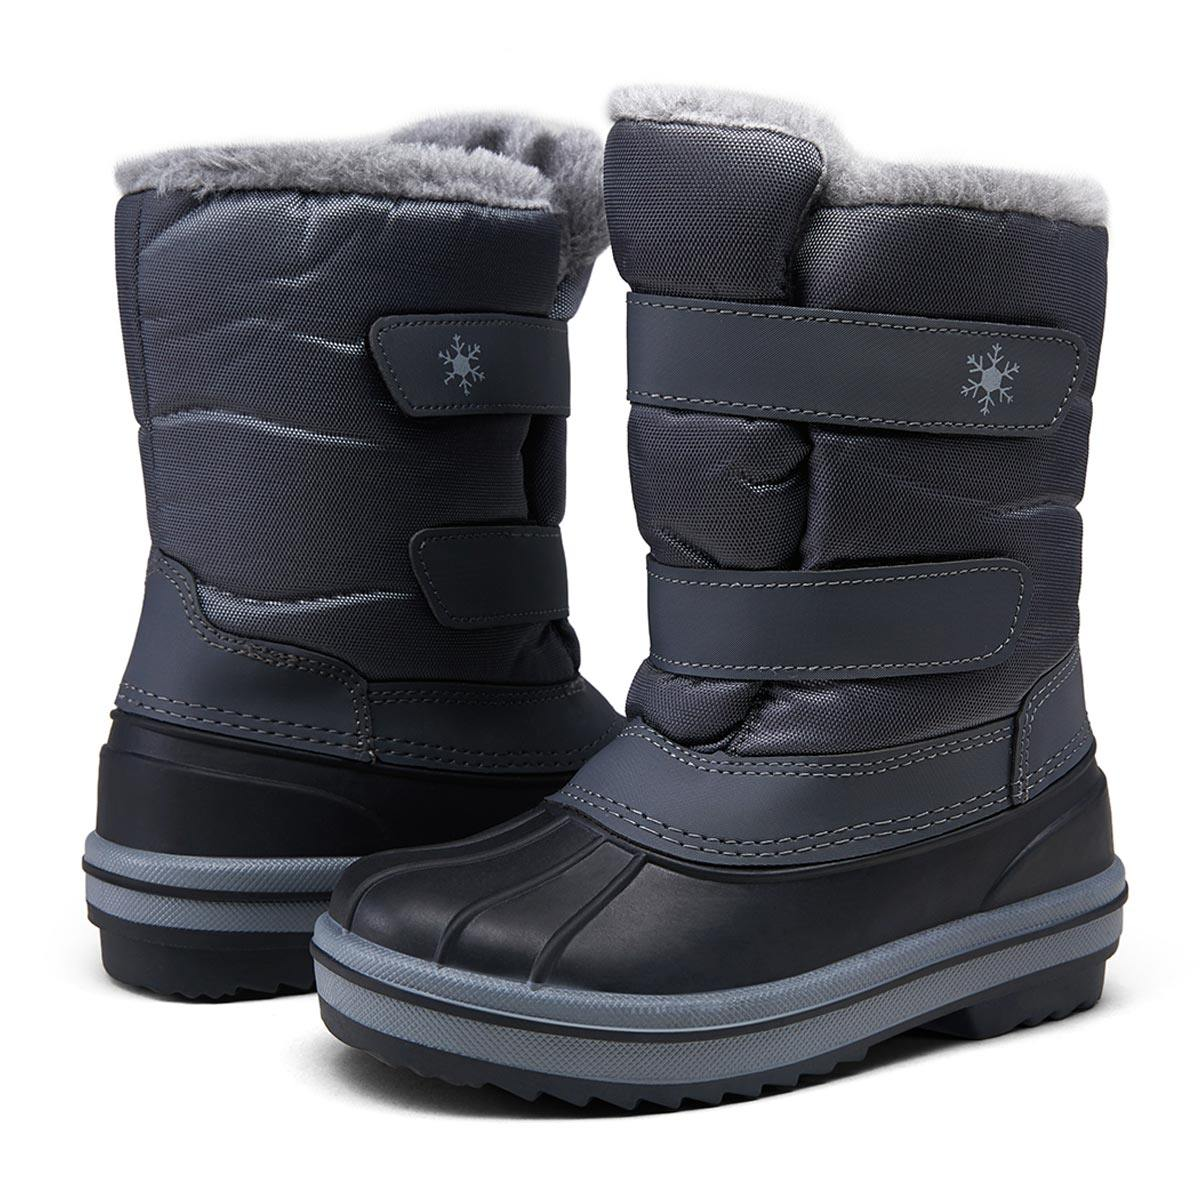 Kids Snow Winter Boots Hiking Waterproof Non-Slip | Vepose - Top shoes club